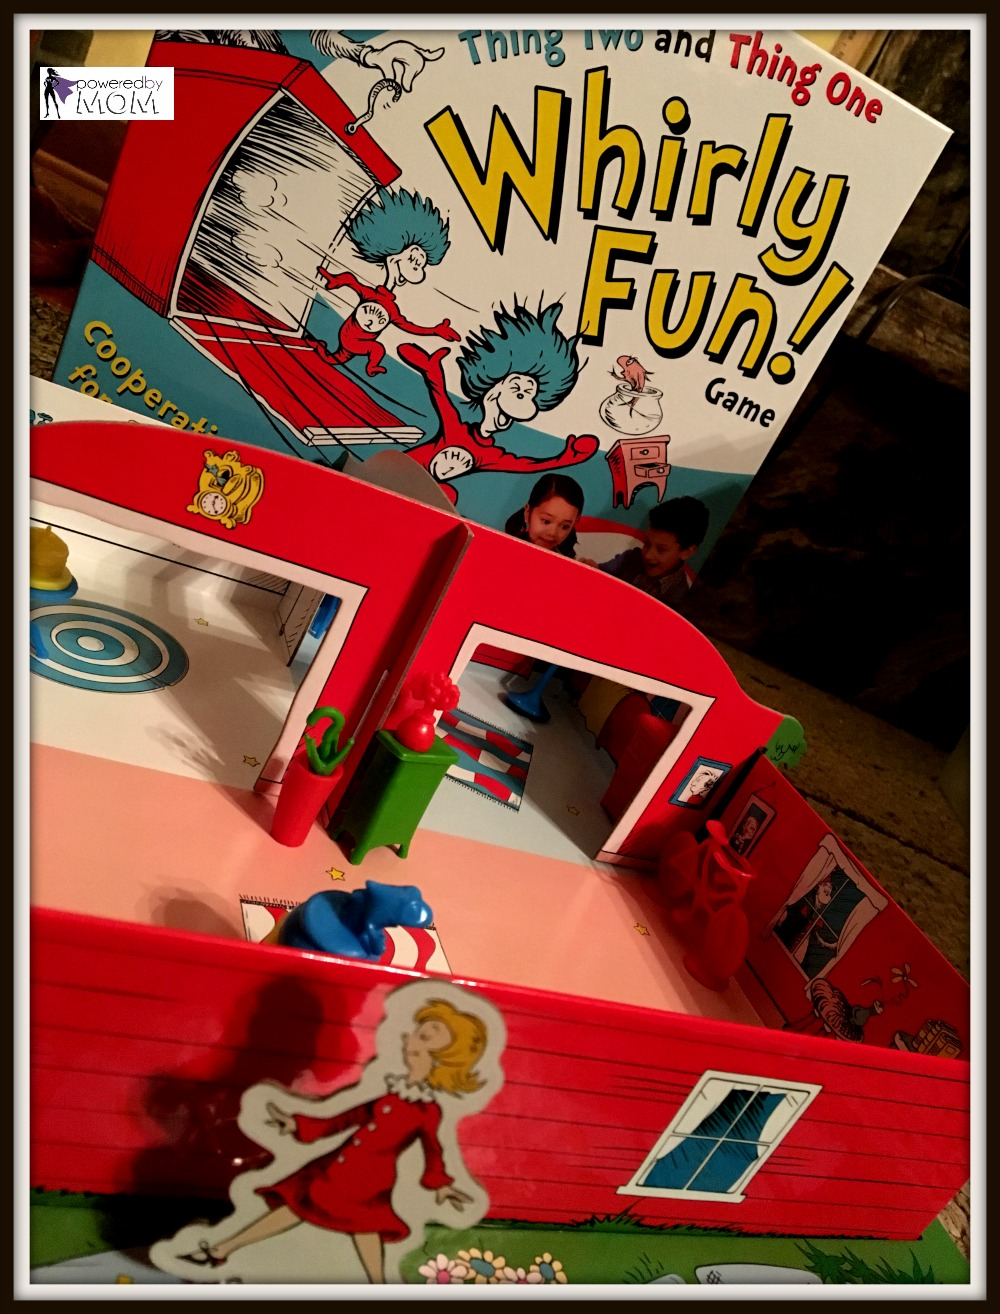 whirly-fun